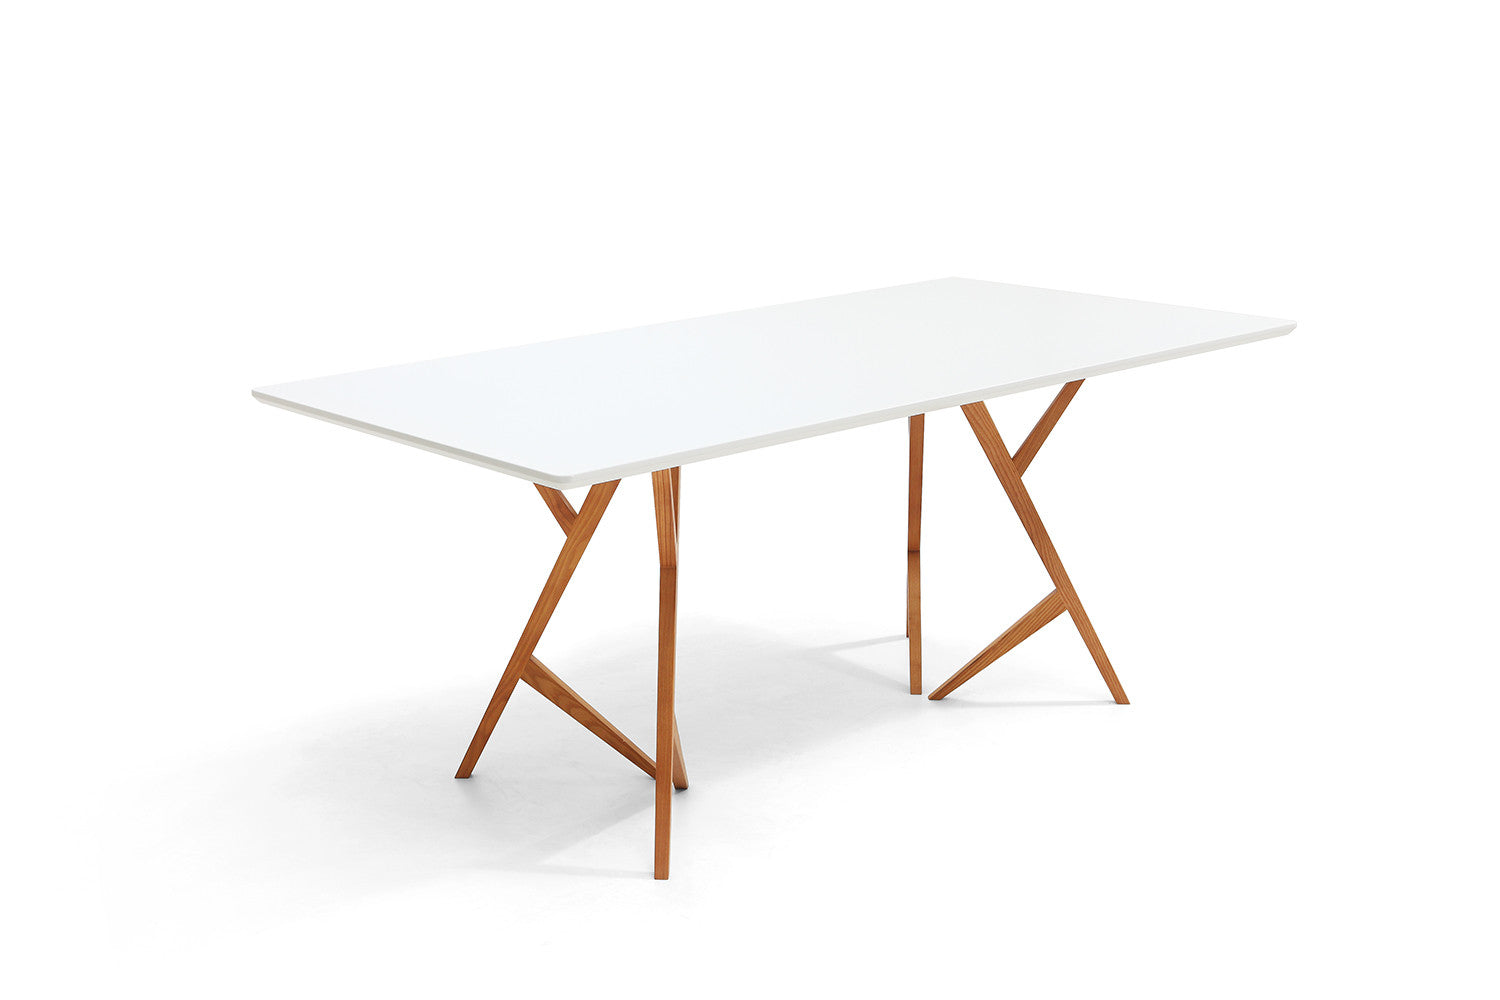 Table de salle manger design scandinave vispa dewarens for Table a manger blanche et bois